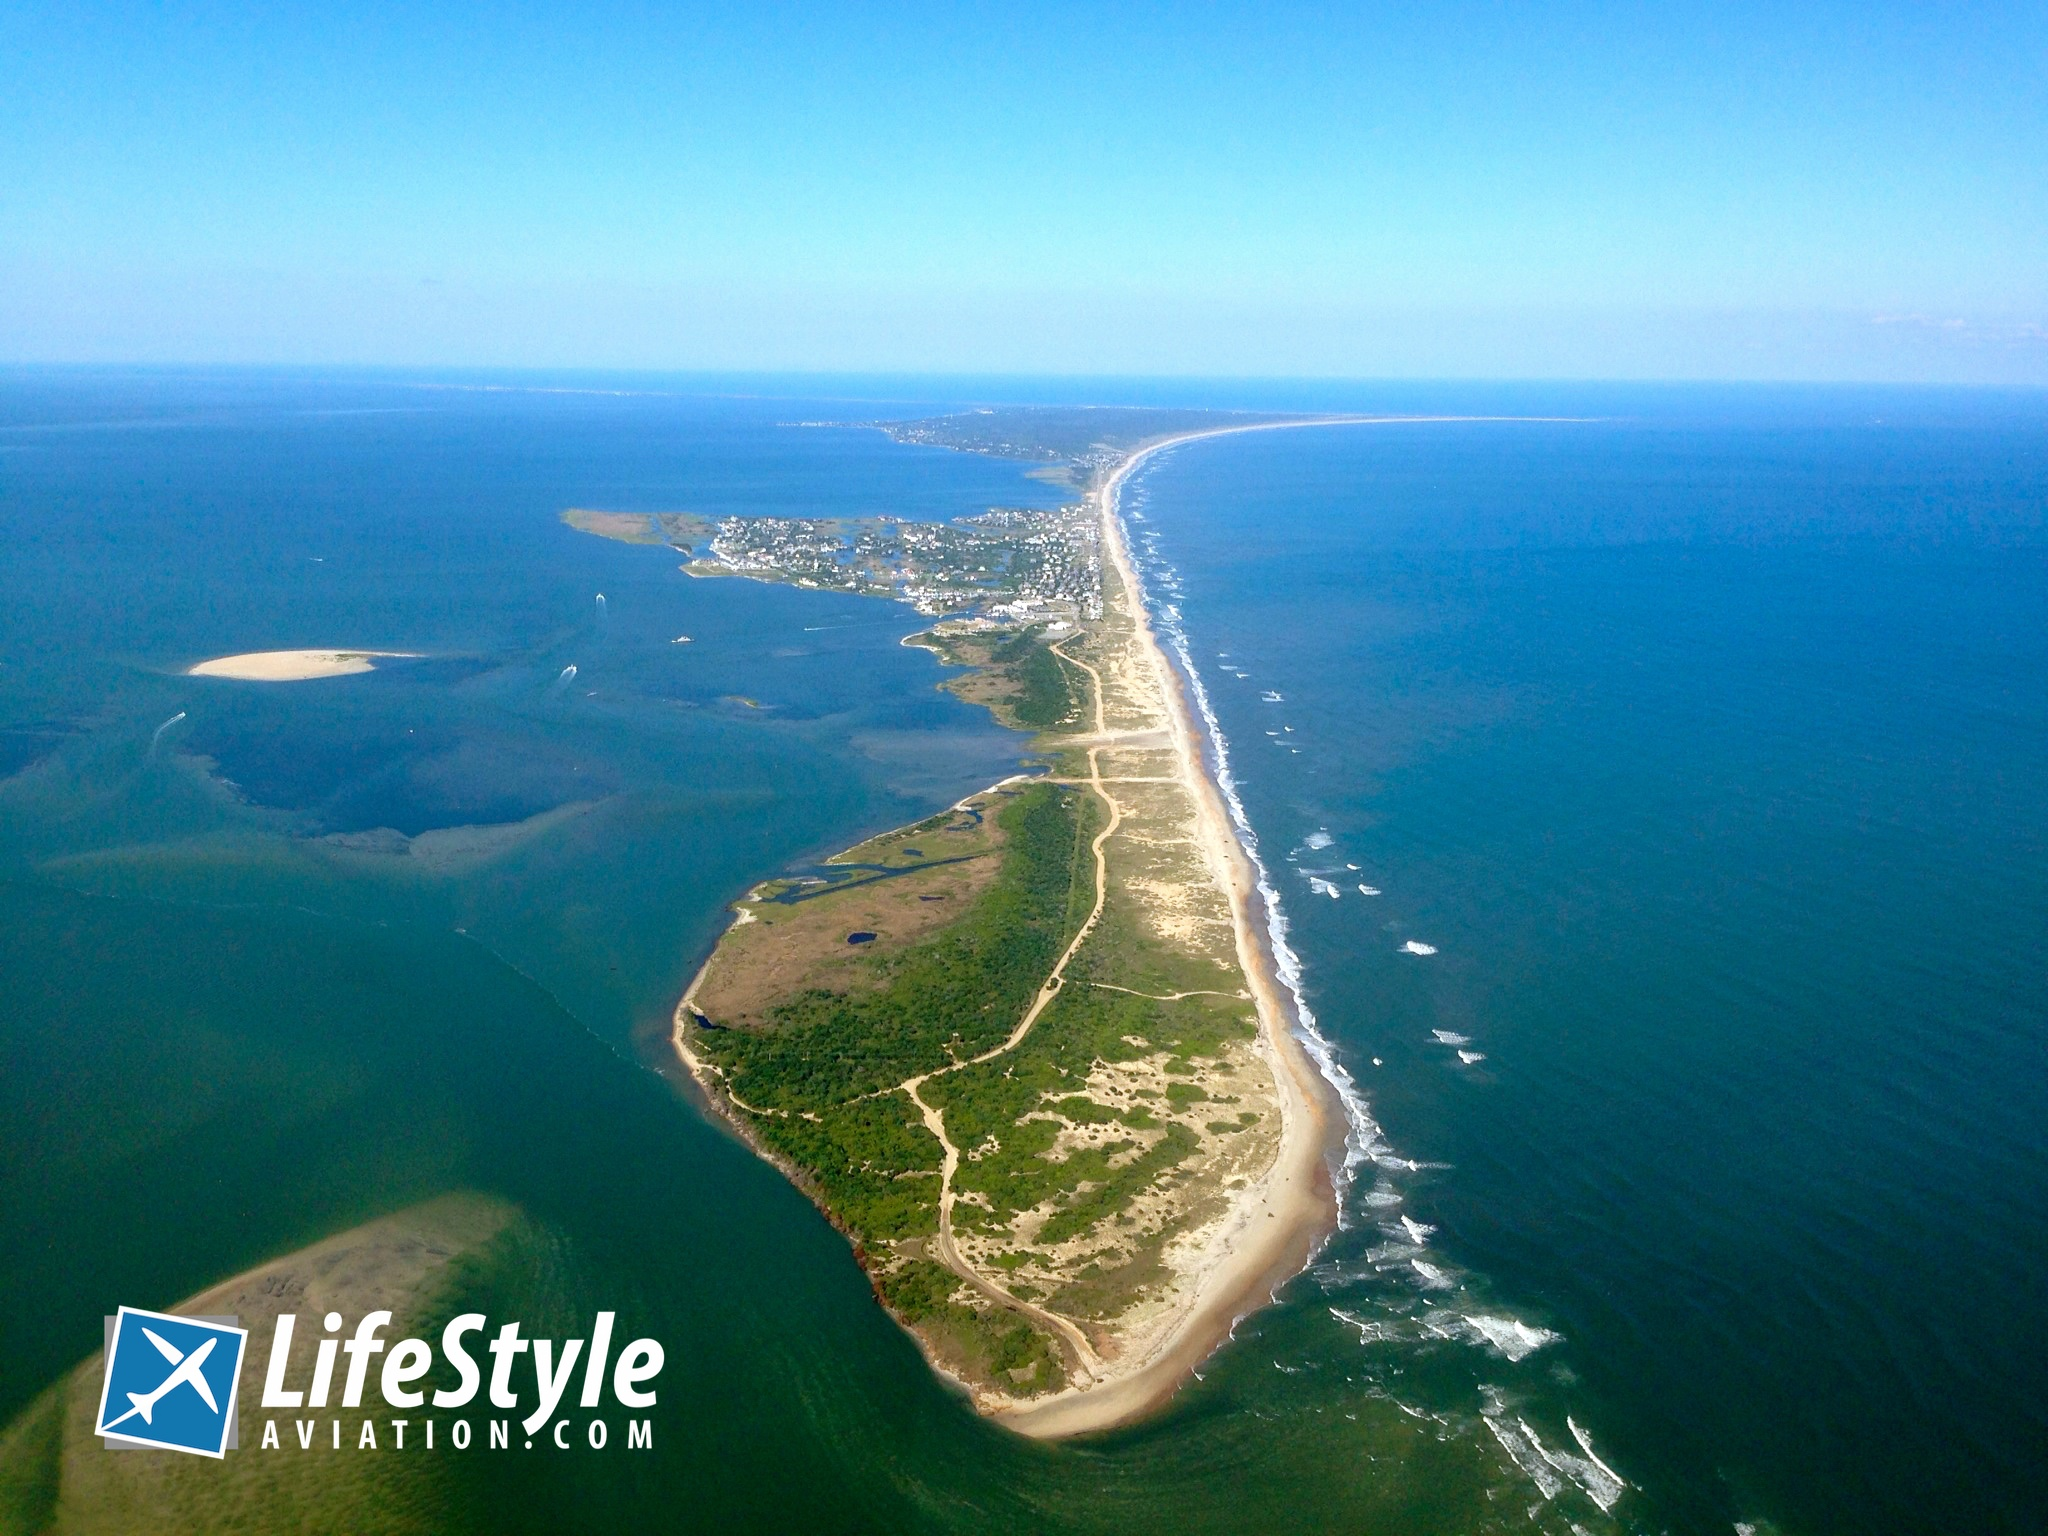 Lifestyle aviation fly fishing is fun lifestyle for Outer banks fly fishing